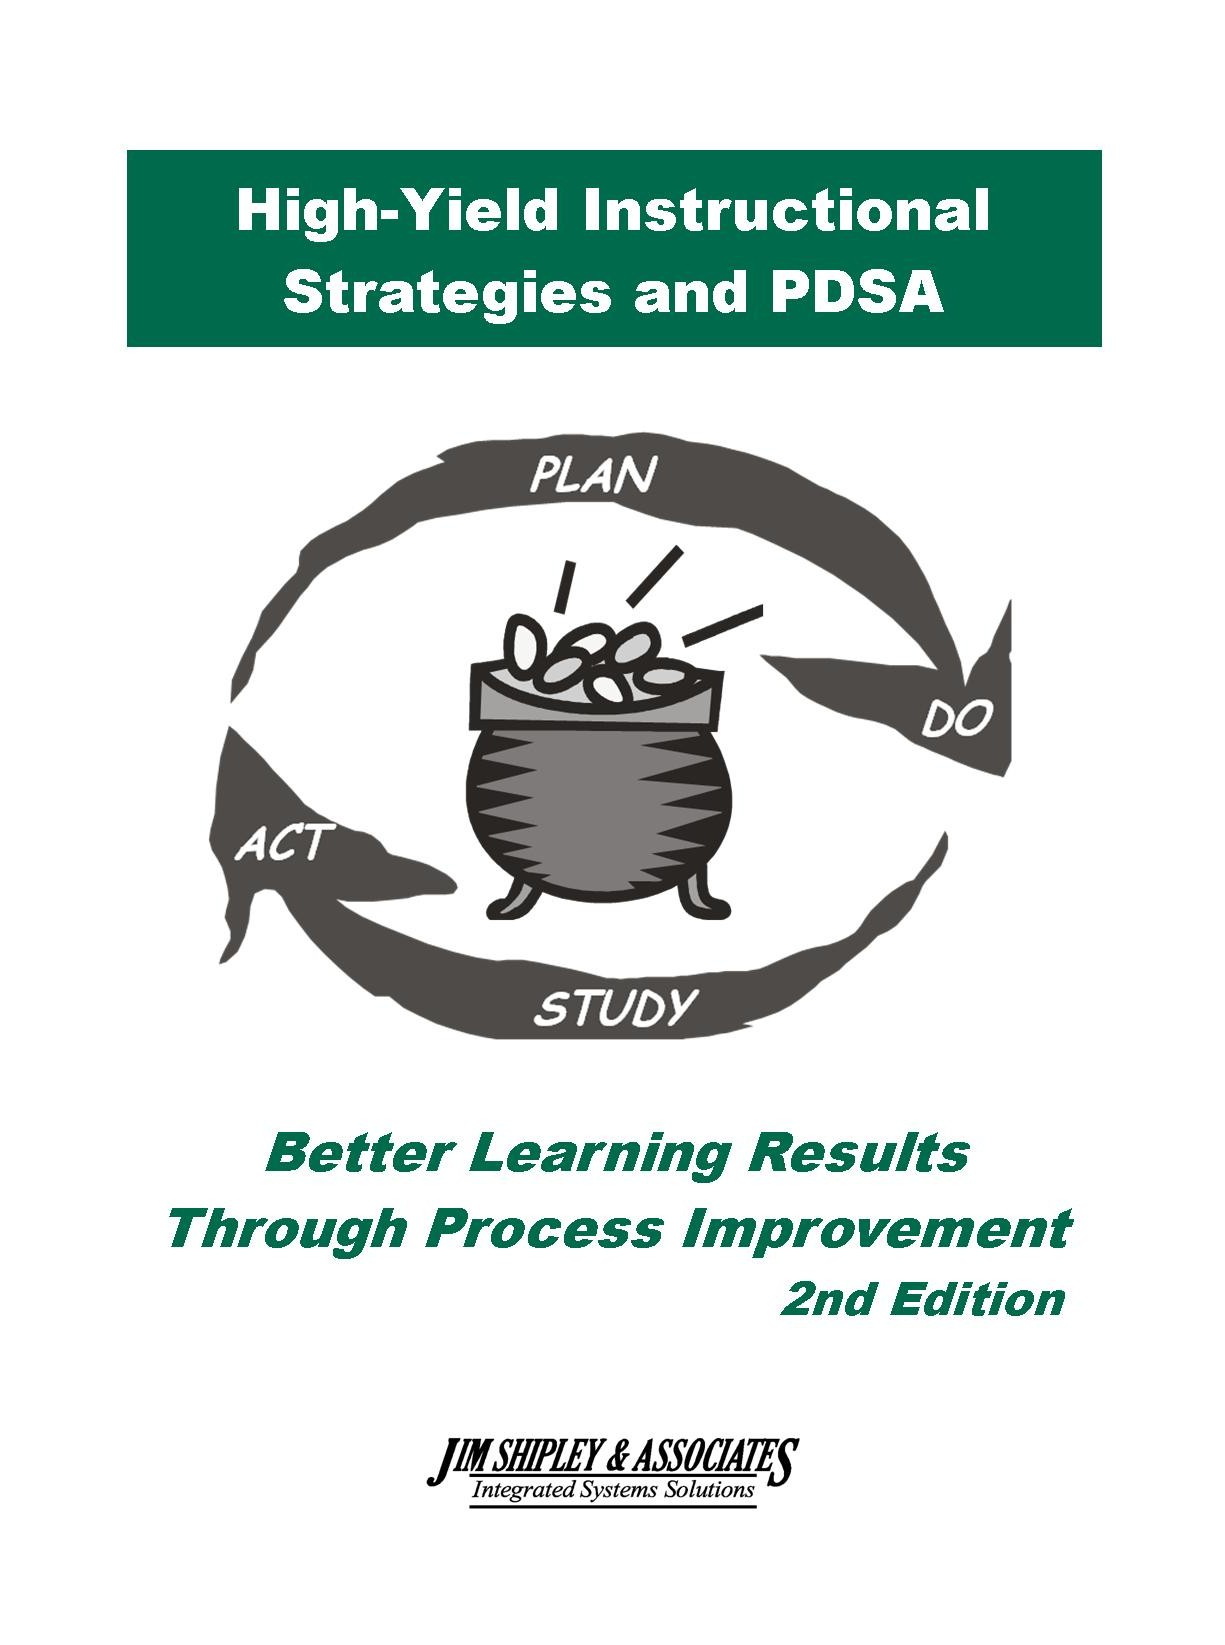 HYS2 - High-Yield Instructional Strategies 2nd Edition Cover Image